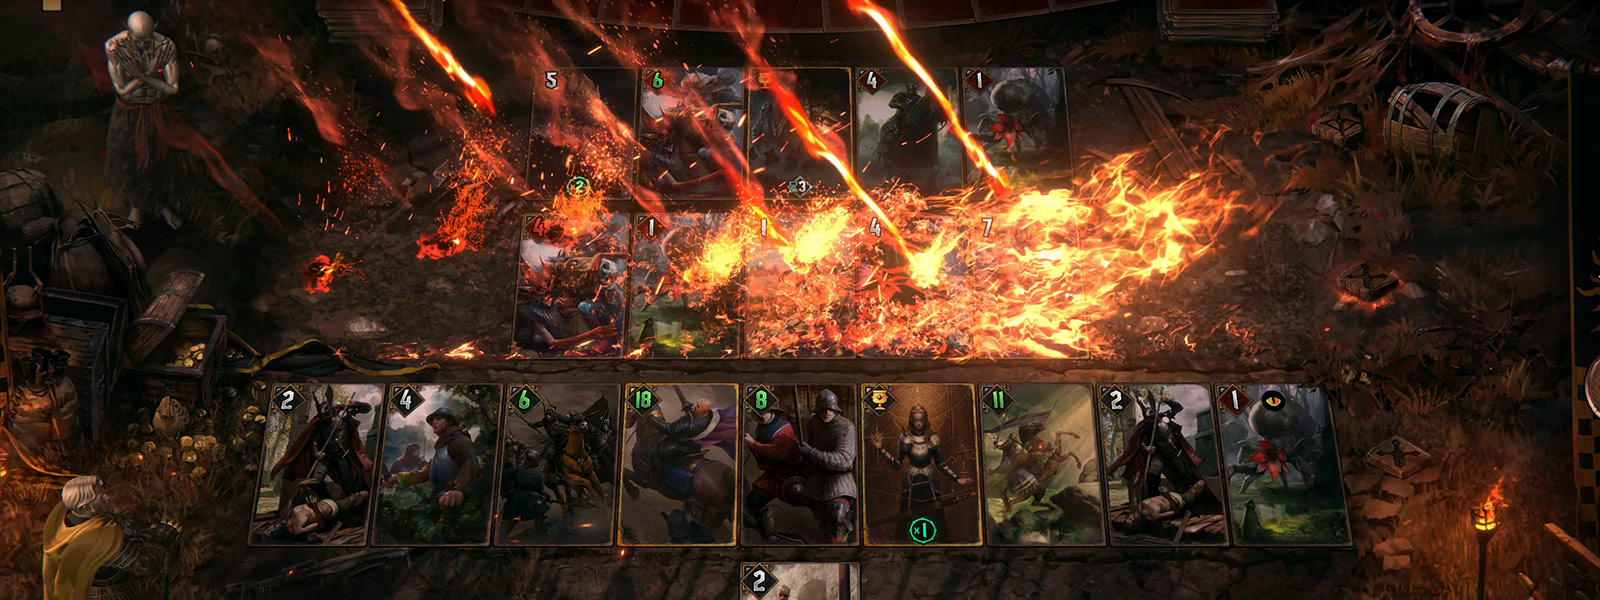 The opponent's cards get pelted by fire during battle